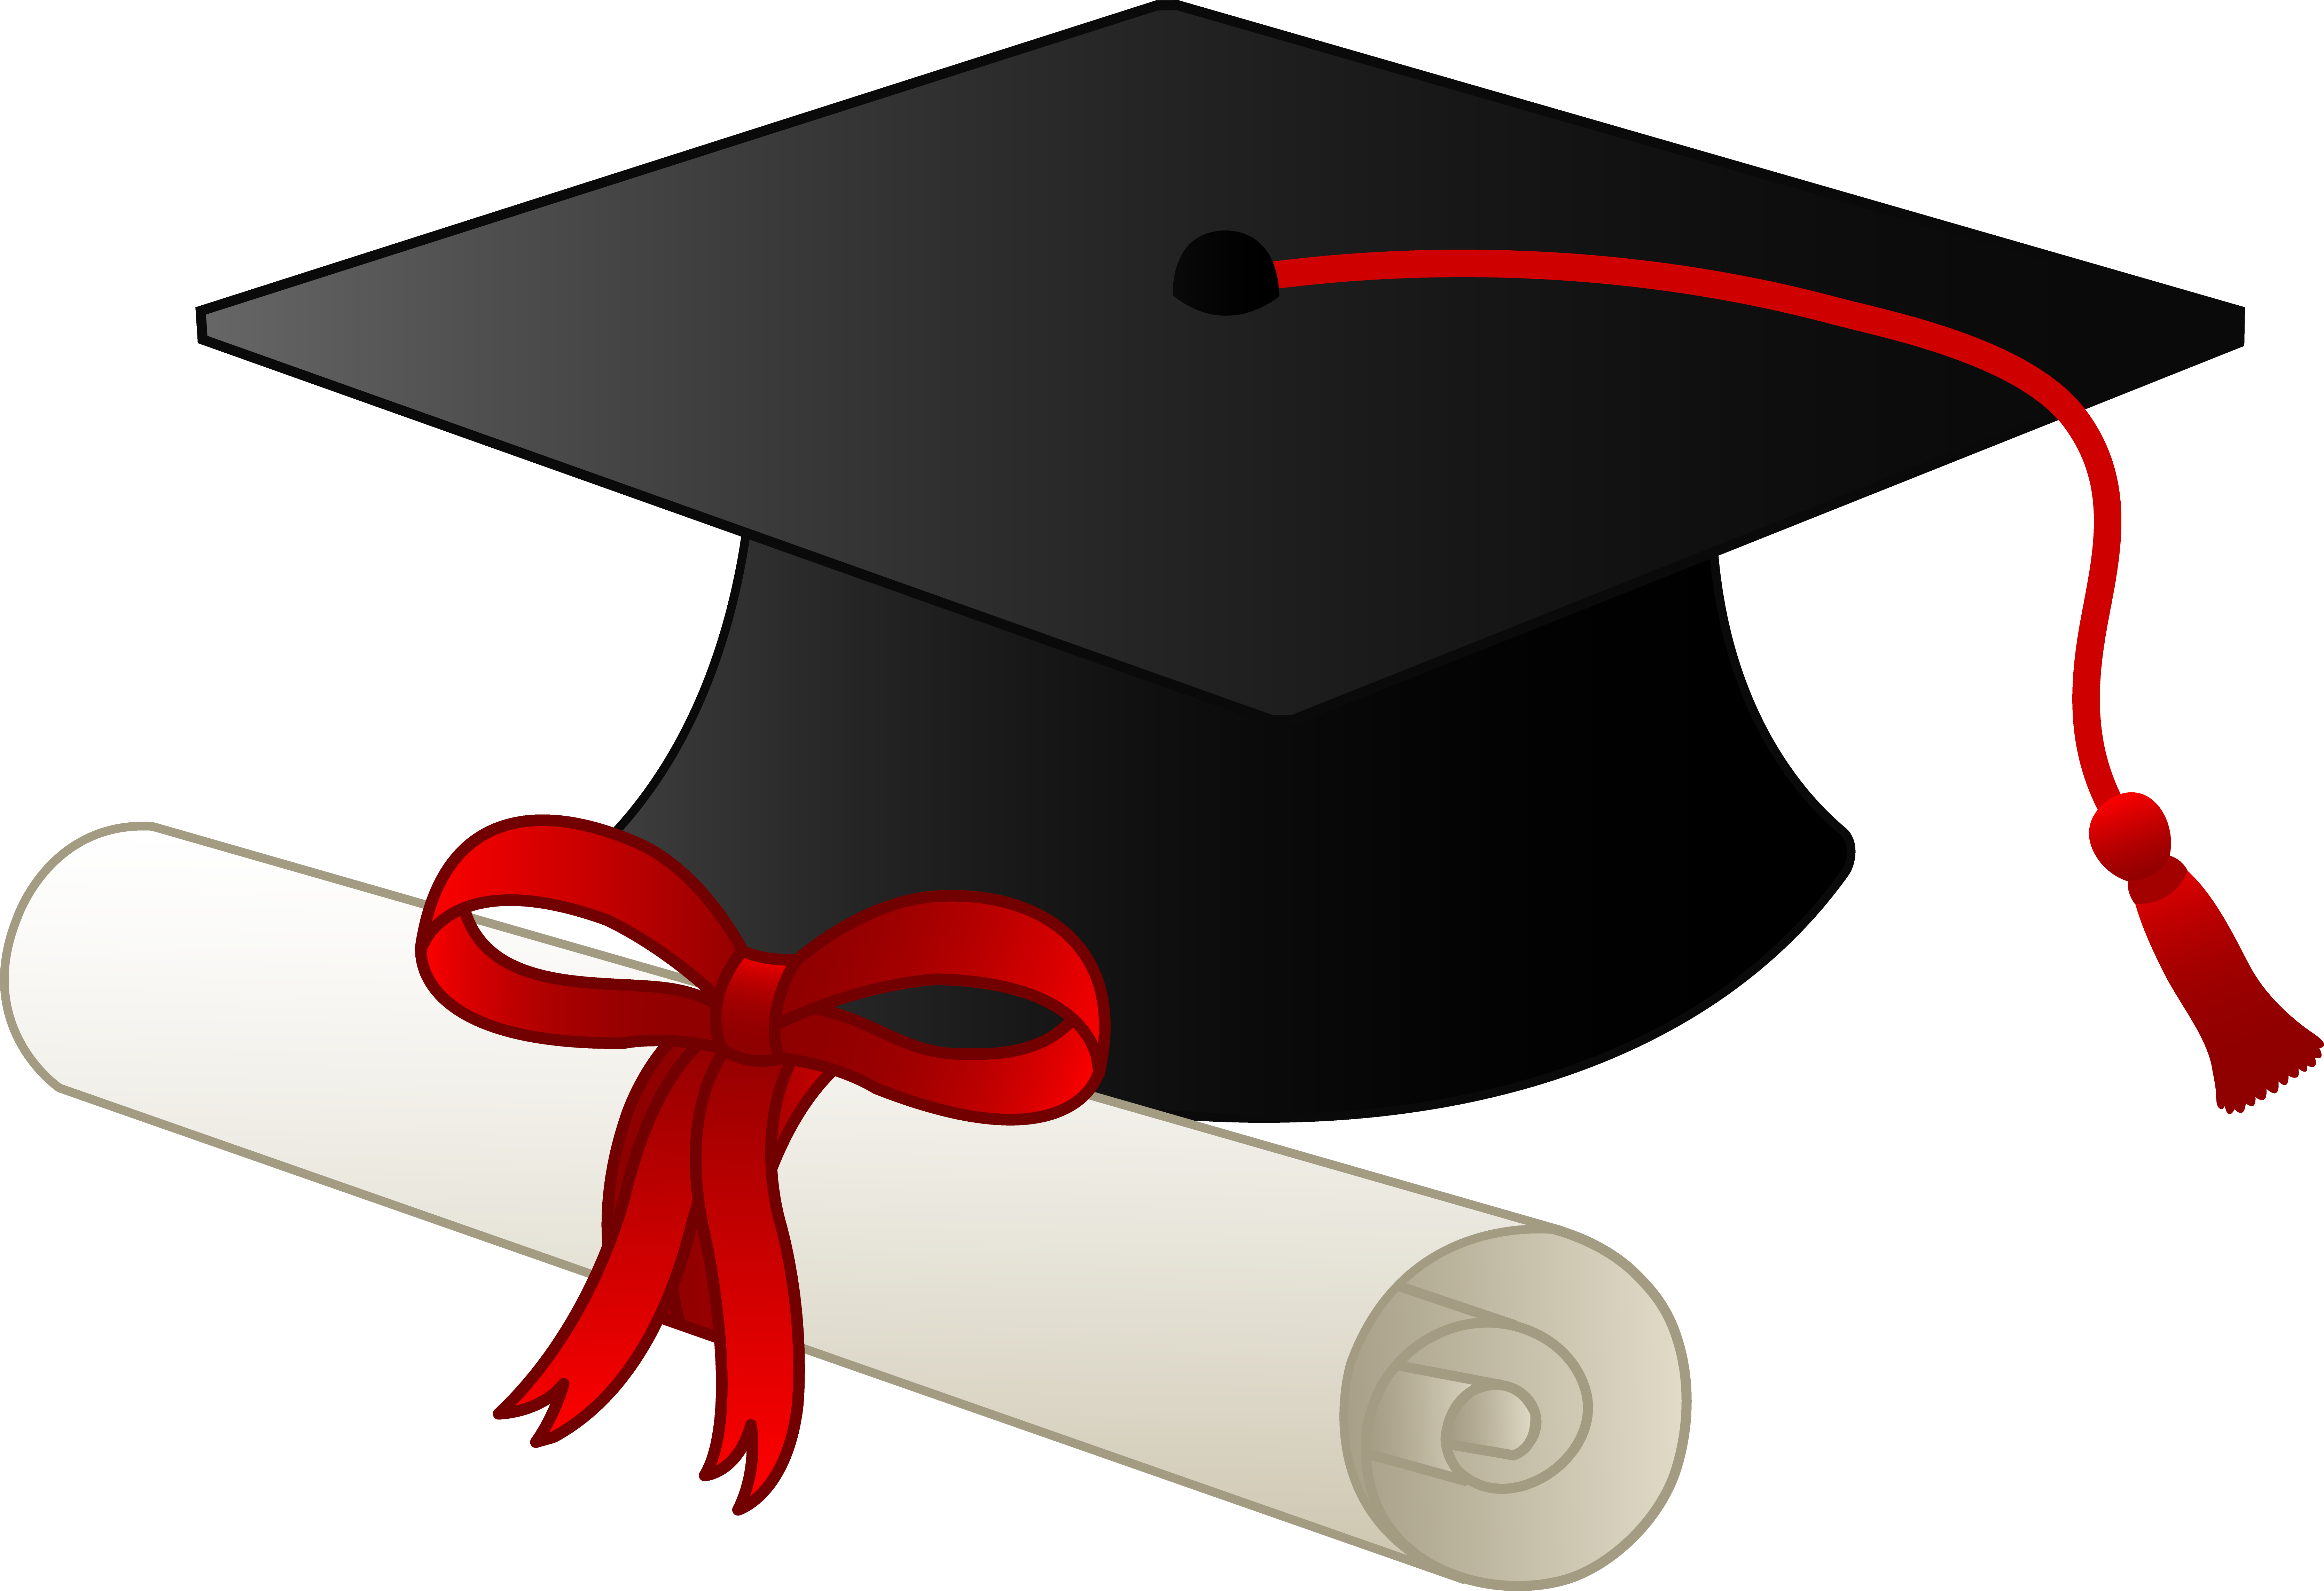 78  Ideas About Graduation Cap Clipart O-78  ideas about Graduation Cap Clipart on Pinterest | Graduation cards, Silhouettes and Silhouette online store-2